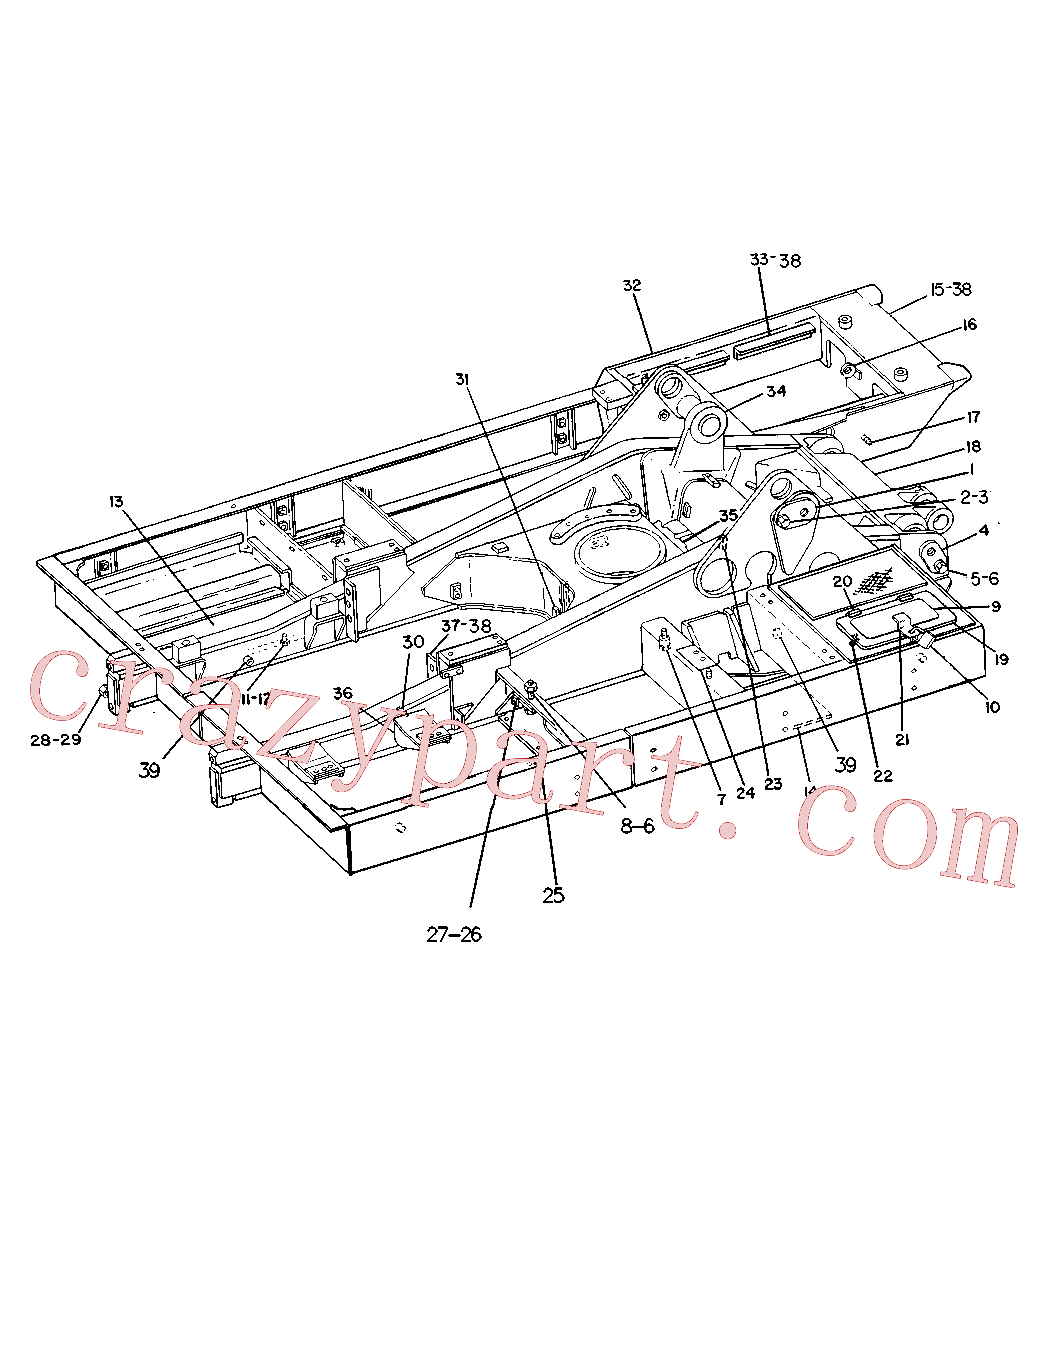 CAT 4J-4177 for 225 Excavator(EXC) chassis and undercarriage 8V-8328 Assembly